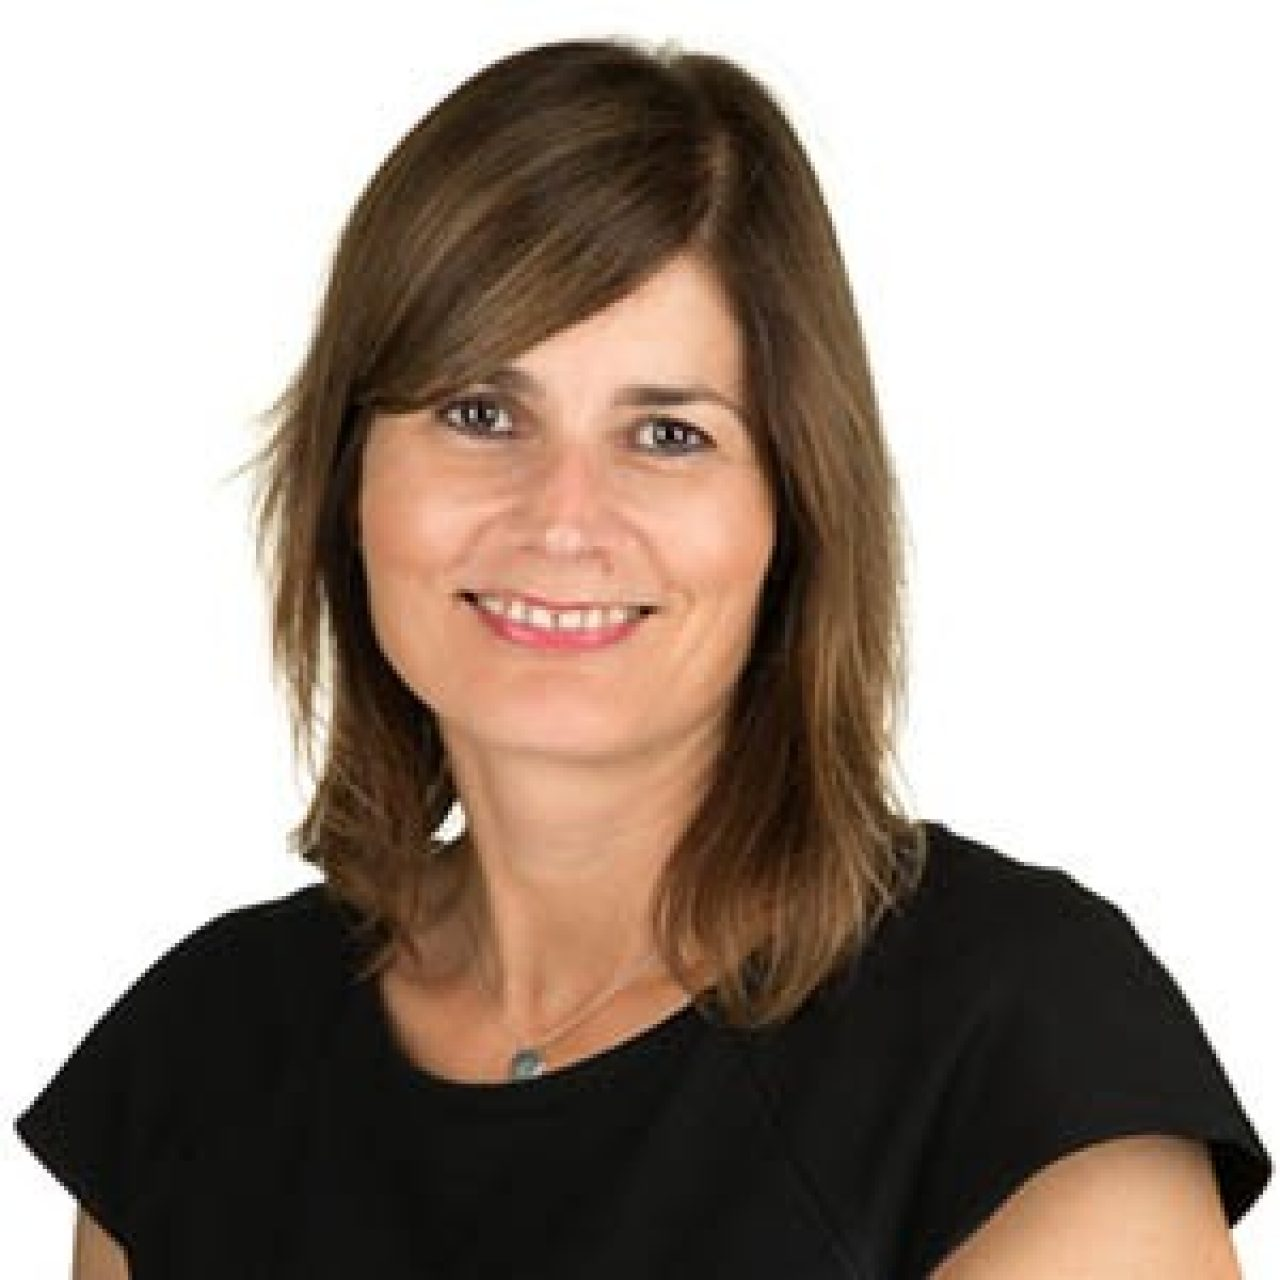 Becky Brookes: Director, Global Channel Development